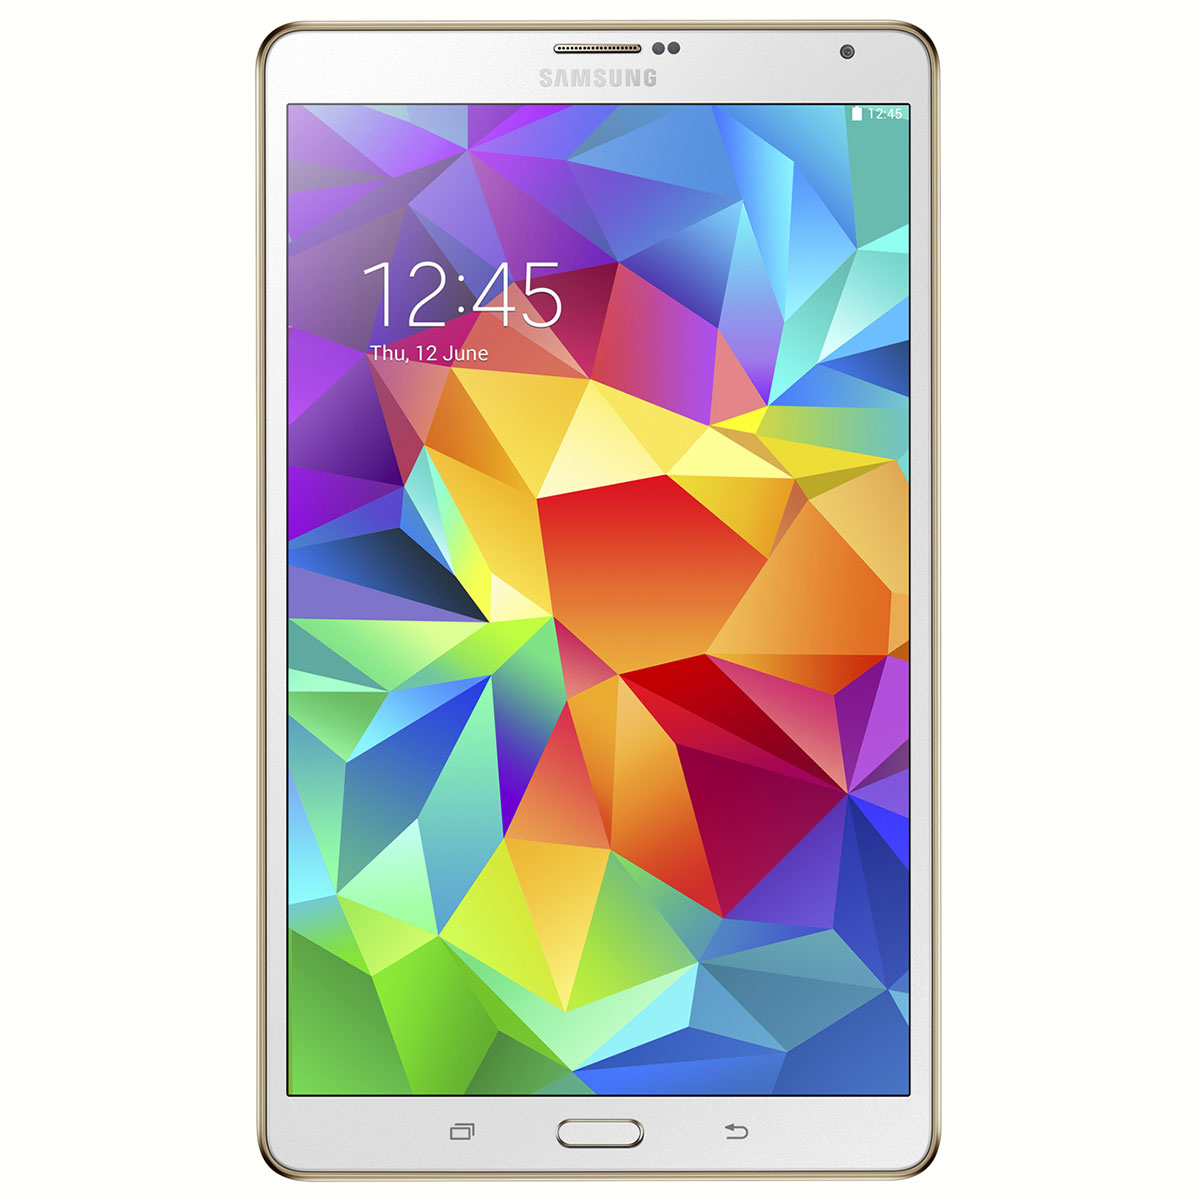 "Tablette tactile Samsung Galaxy Tab 4 7"" SM-T230 8 Go Blanc Tablette Internet - ARM Cortex-A7 Quad-Core 1.2 GHz 1.5 Go 8 Go 7"" LED Tactile Wi-Fi/Bluetooth/Webcam Android 4.4"